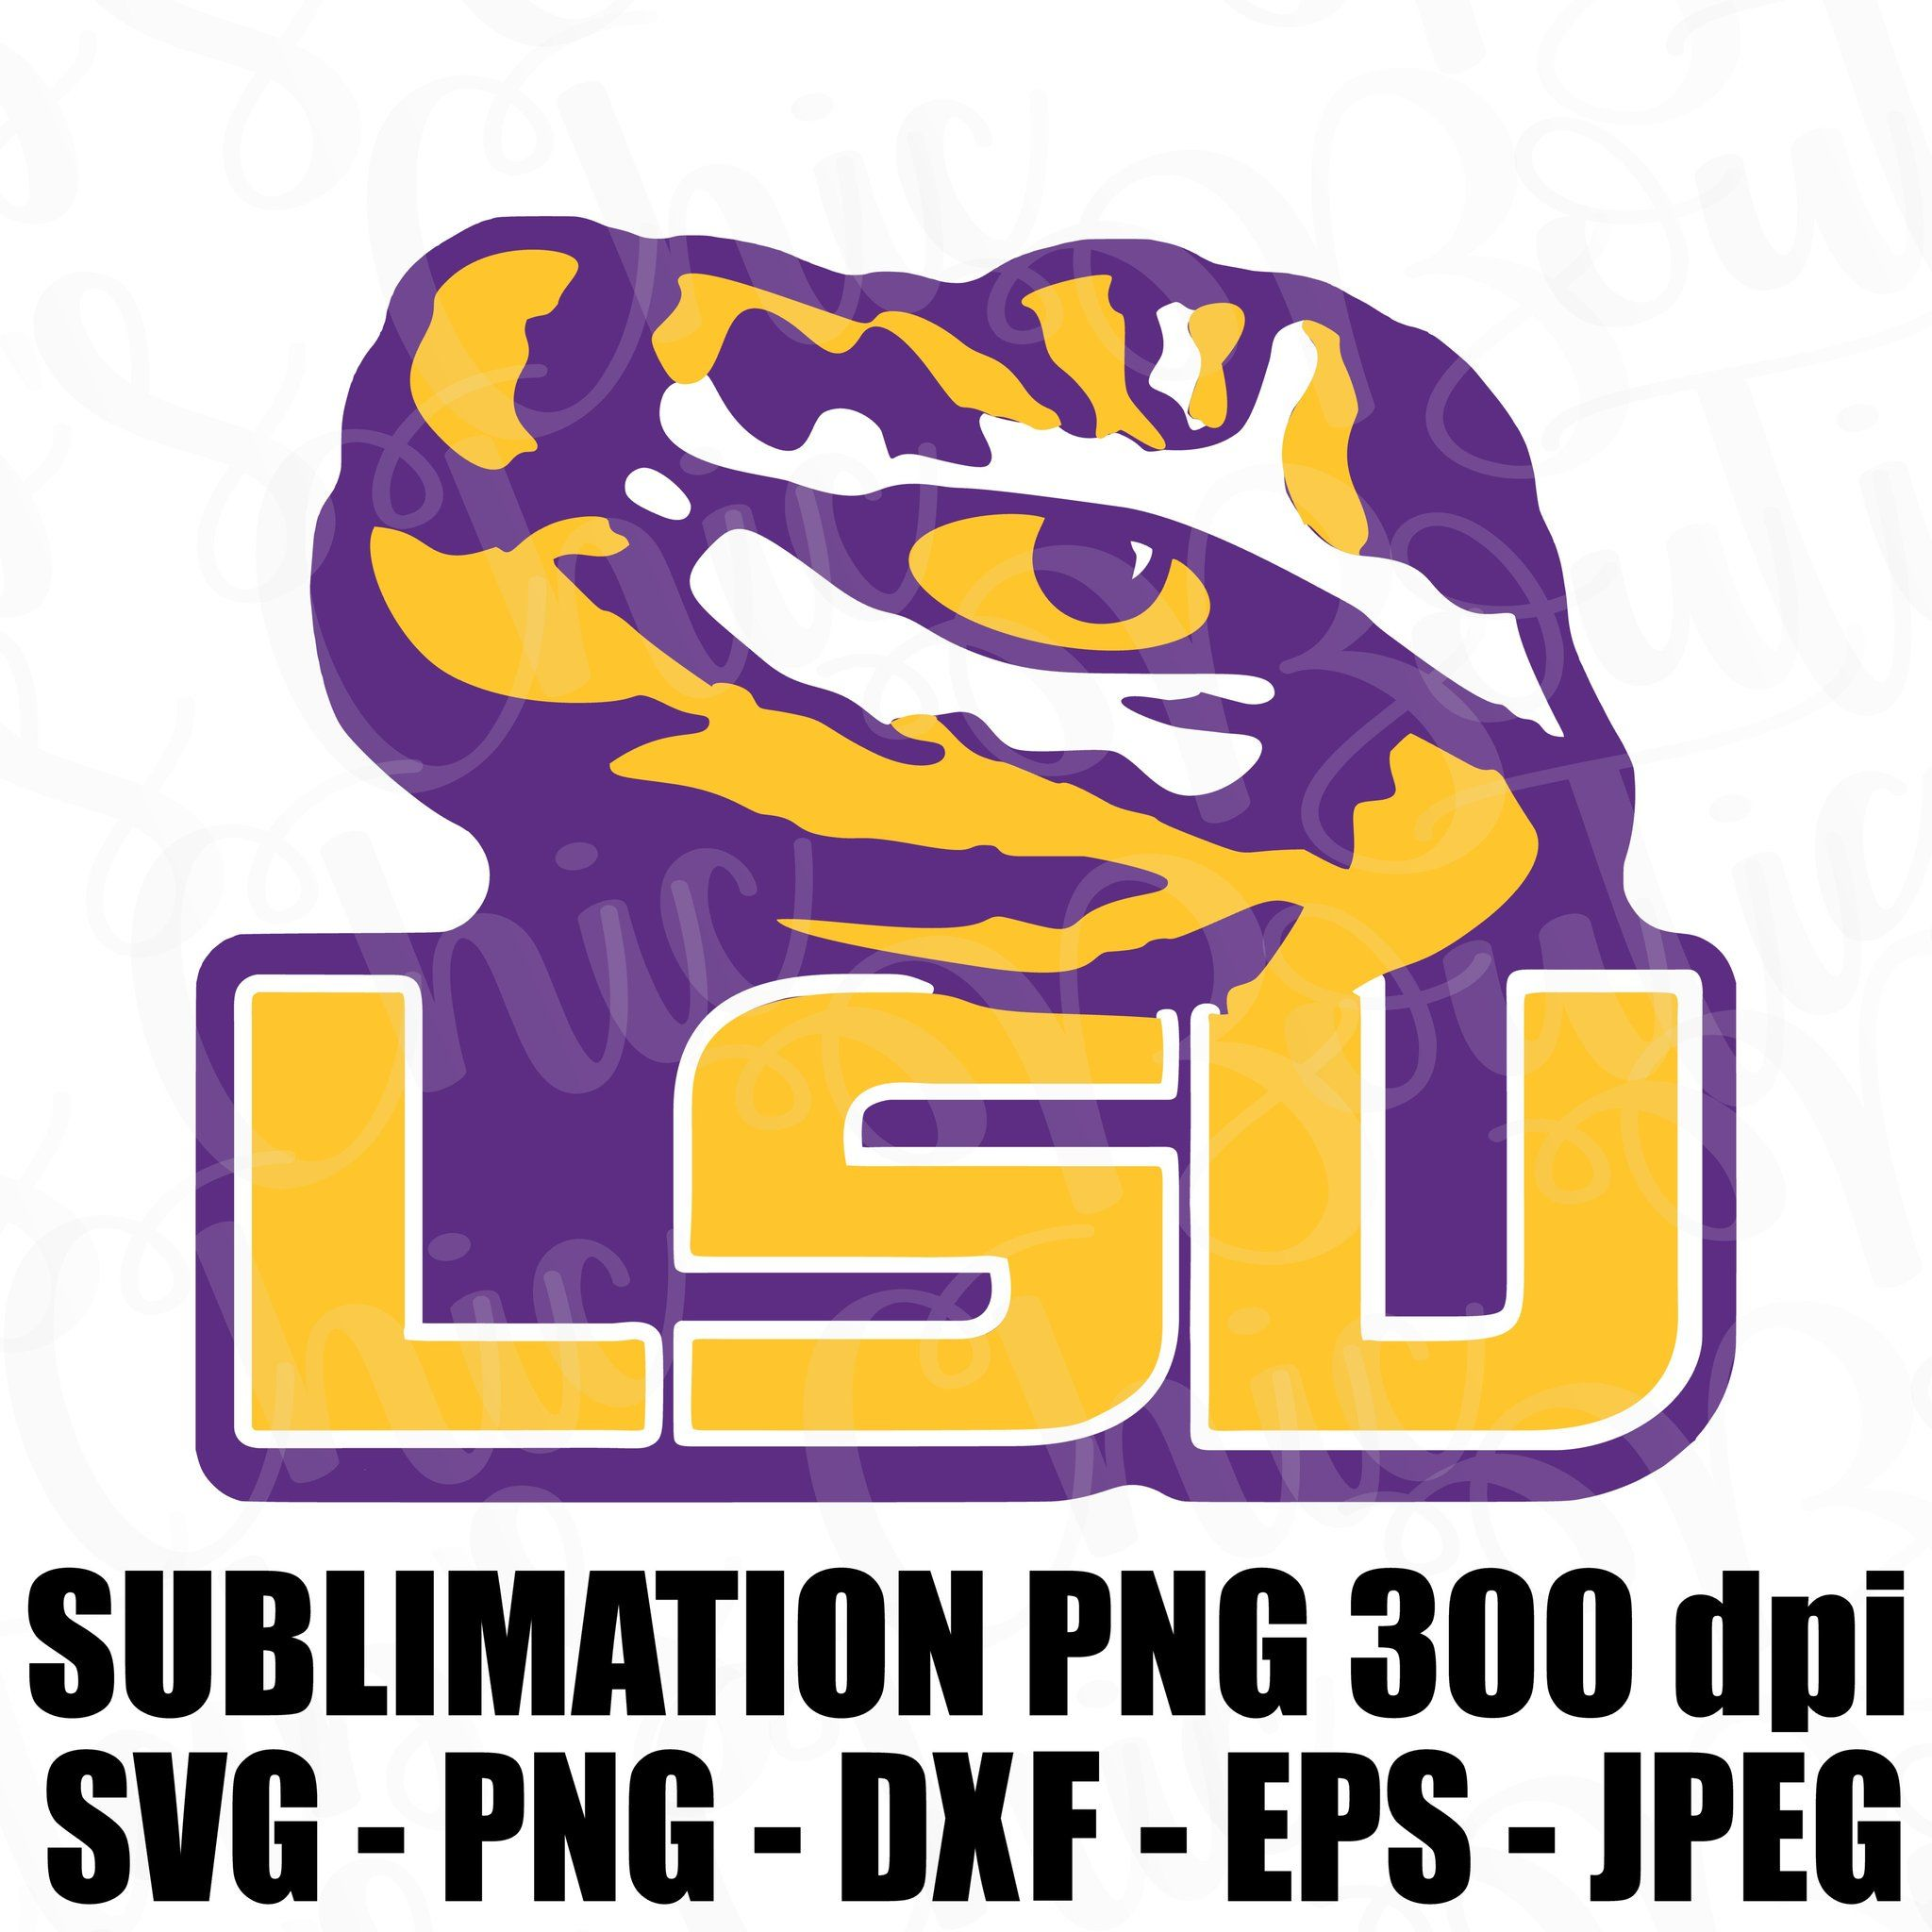 Lsu Tigers Louisiana State University Logo Svg Jpeg High Def 300 Dpi Png Dxf Topper Sublimation Iron On Football In 2020 Lsu Tigers Football Lsu Football Logo